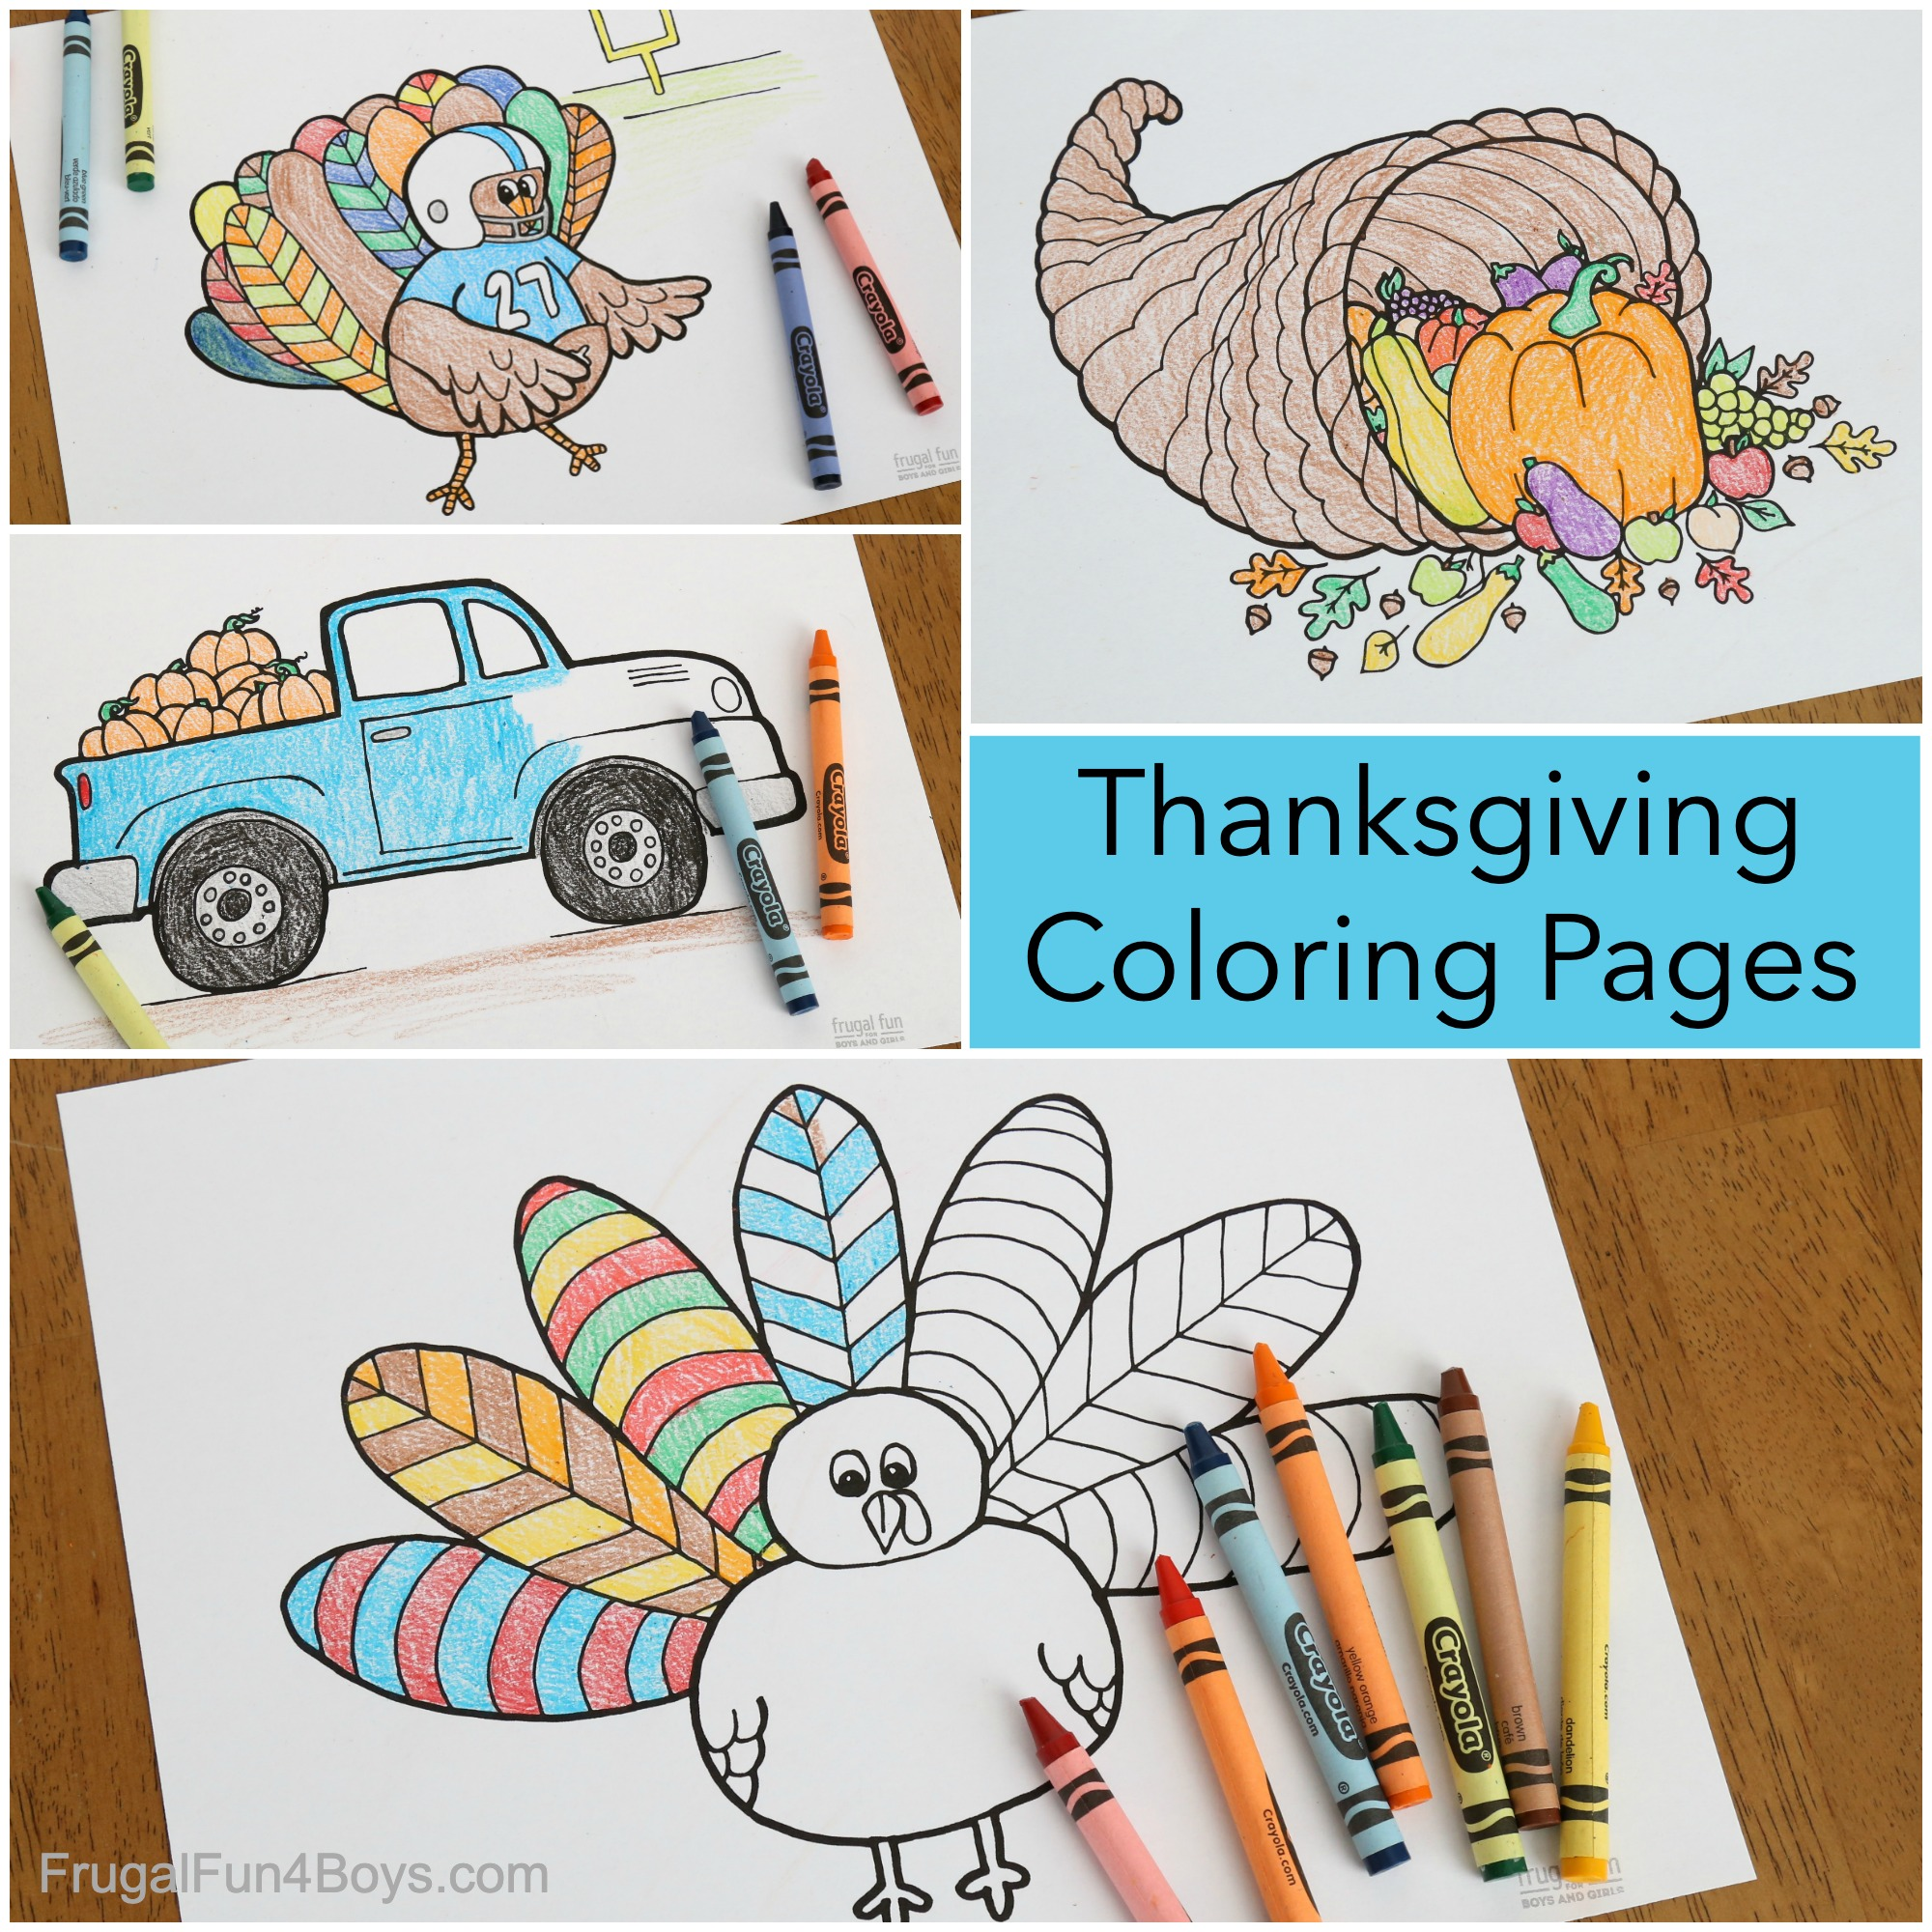 Thanksgiving coloring pages - turkey, cornucopia, truck